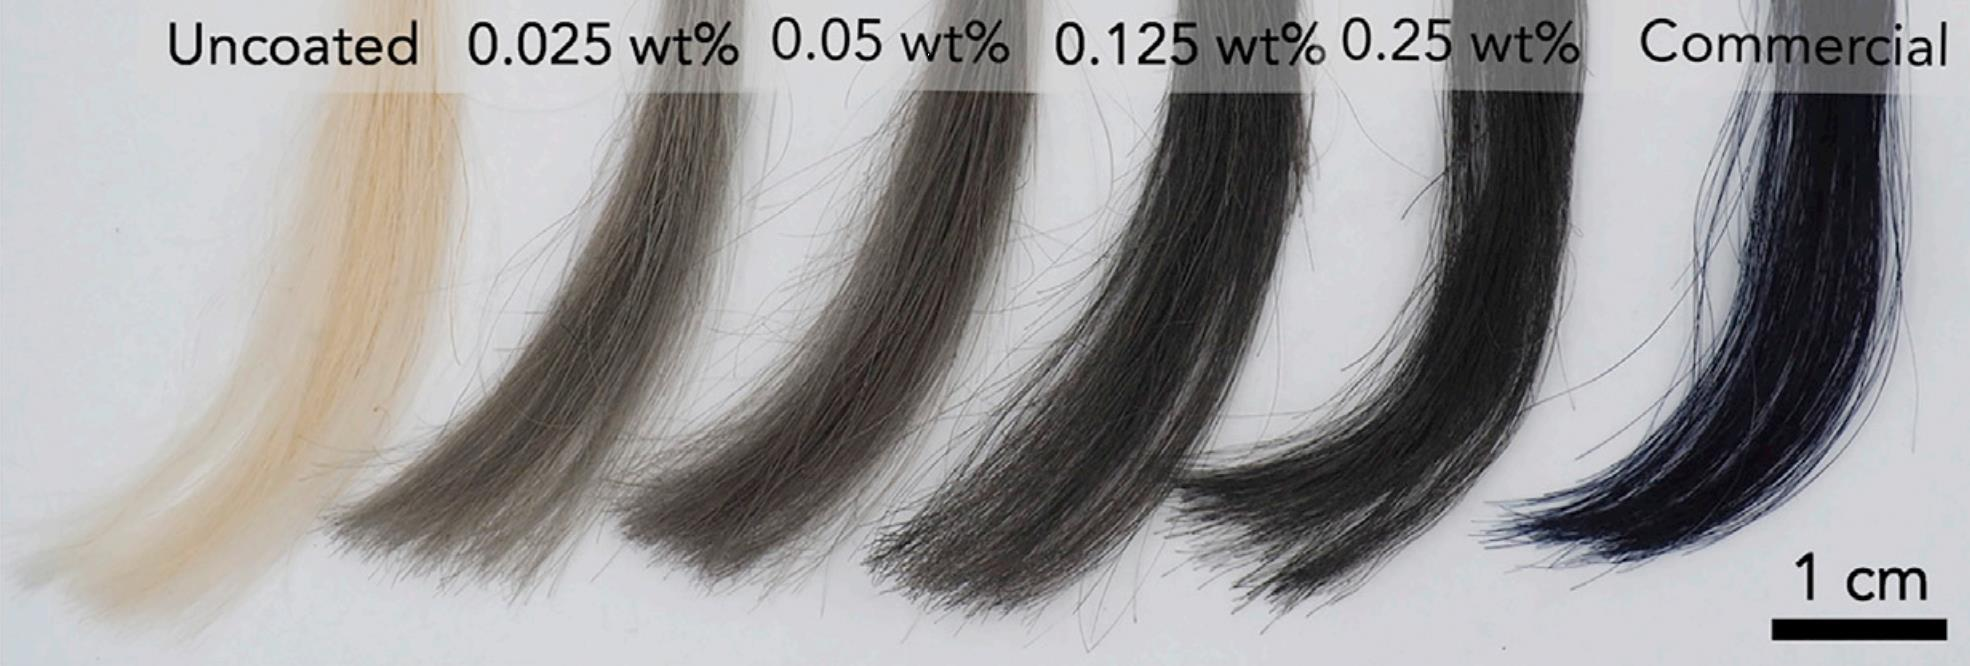 Healthier Hair In Just 10 Minutes With Graphene Dye Research